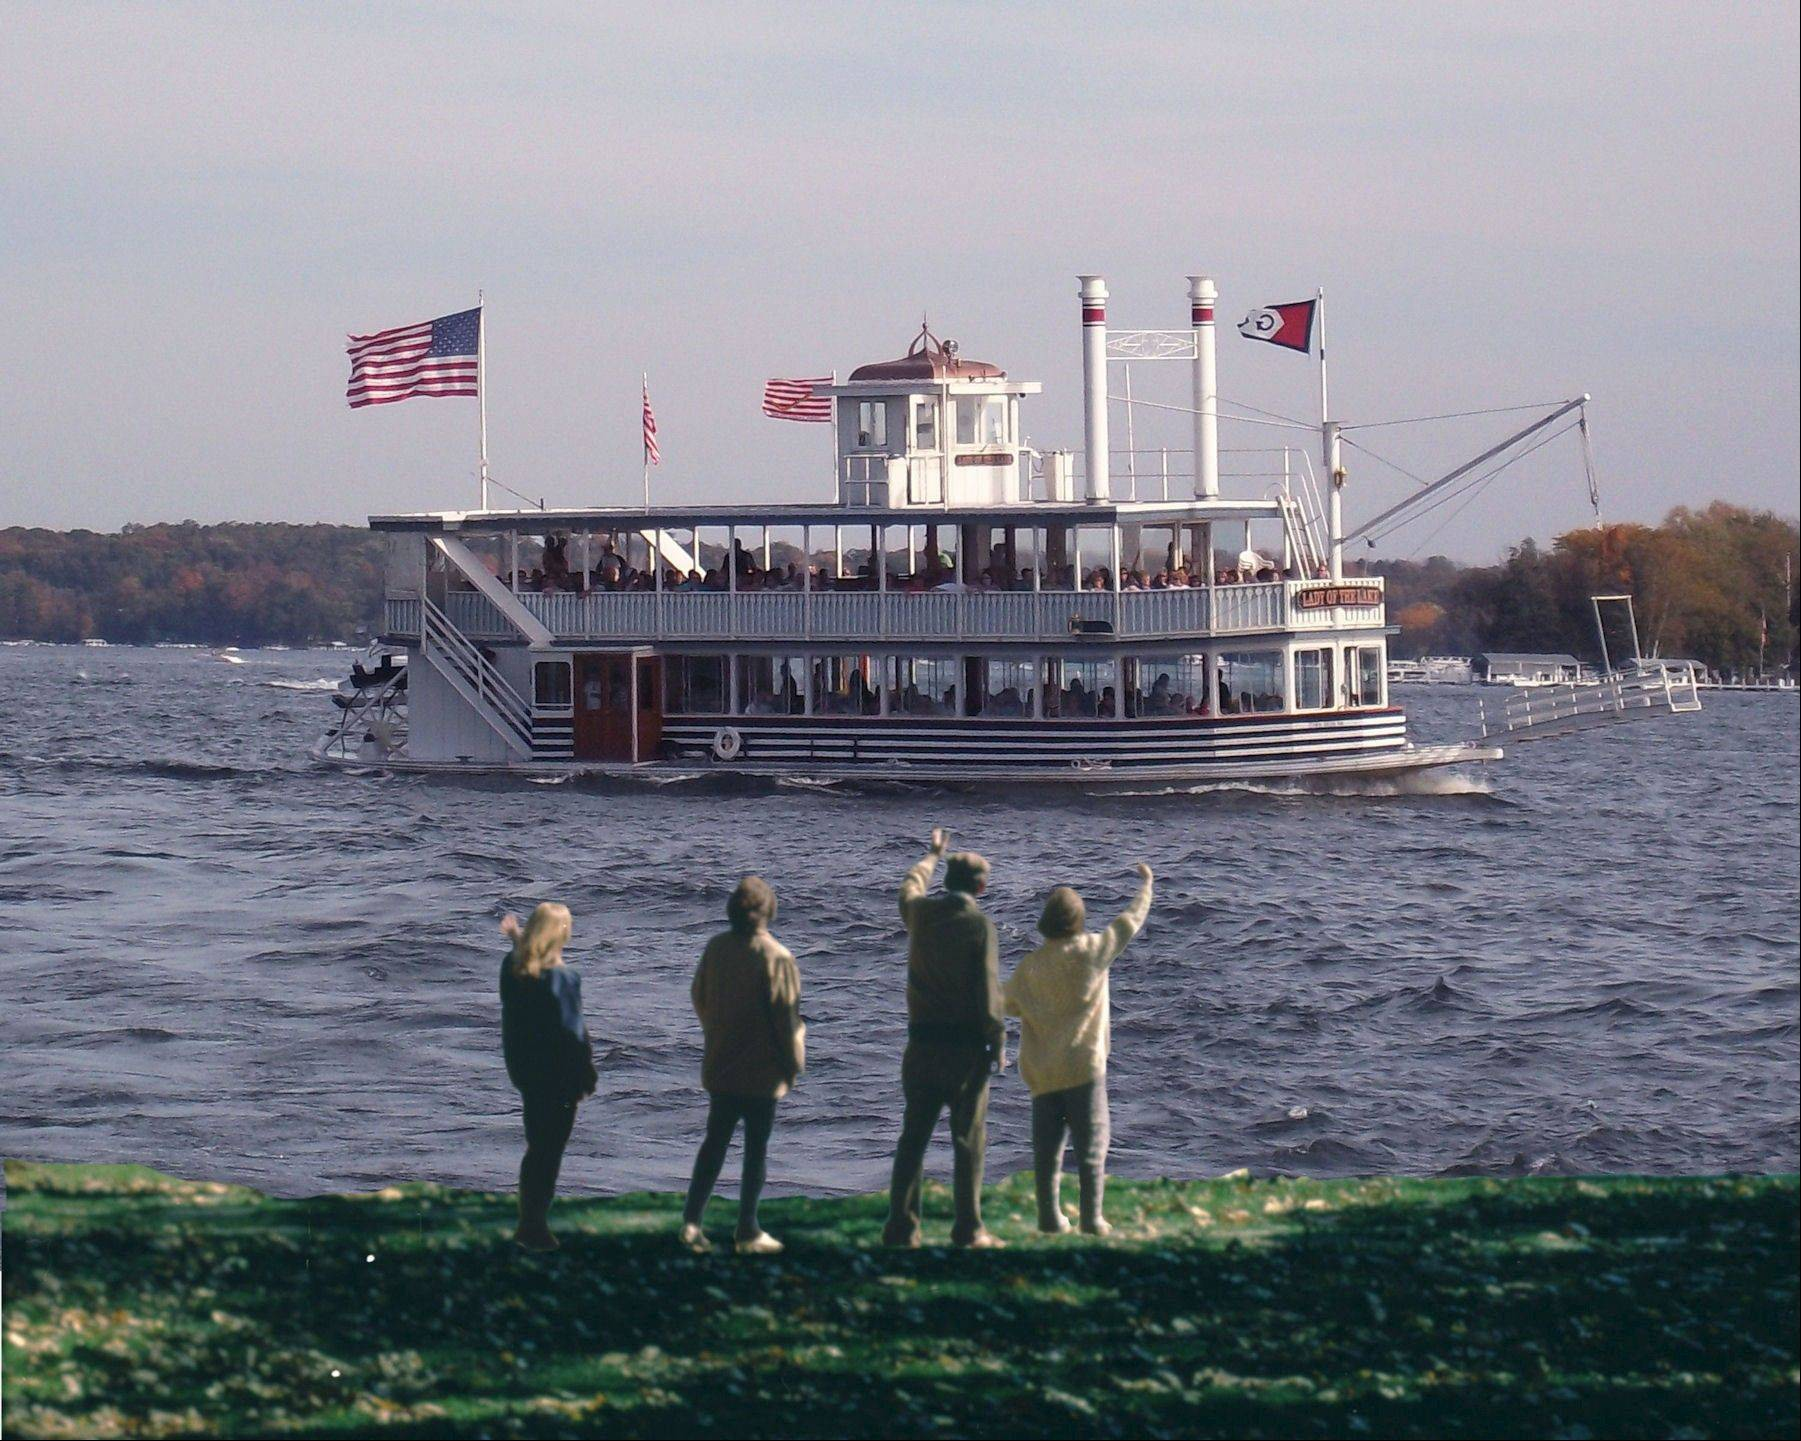 Hike then board a boat for a champagne brunch Sundays this fall with the Lake Geneva Cruise Line.